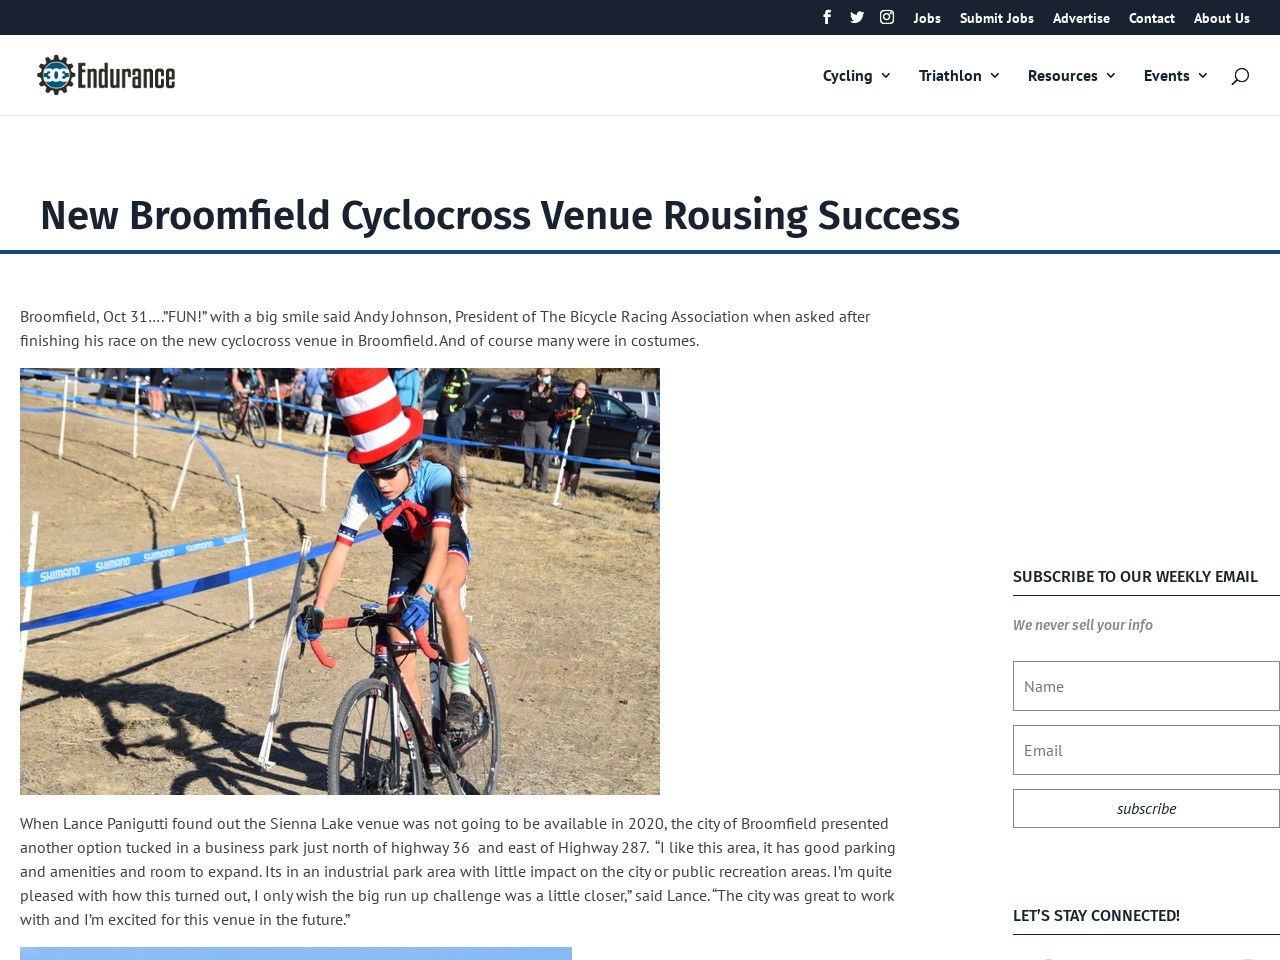 New Broomfield Cyclocross Venue Rousing Success